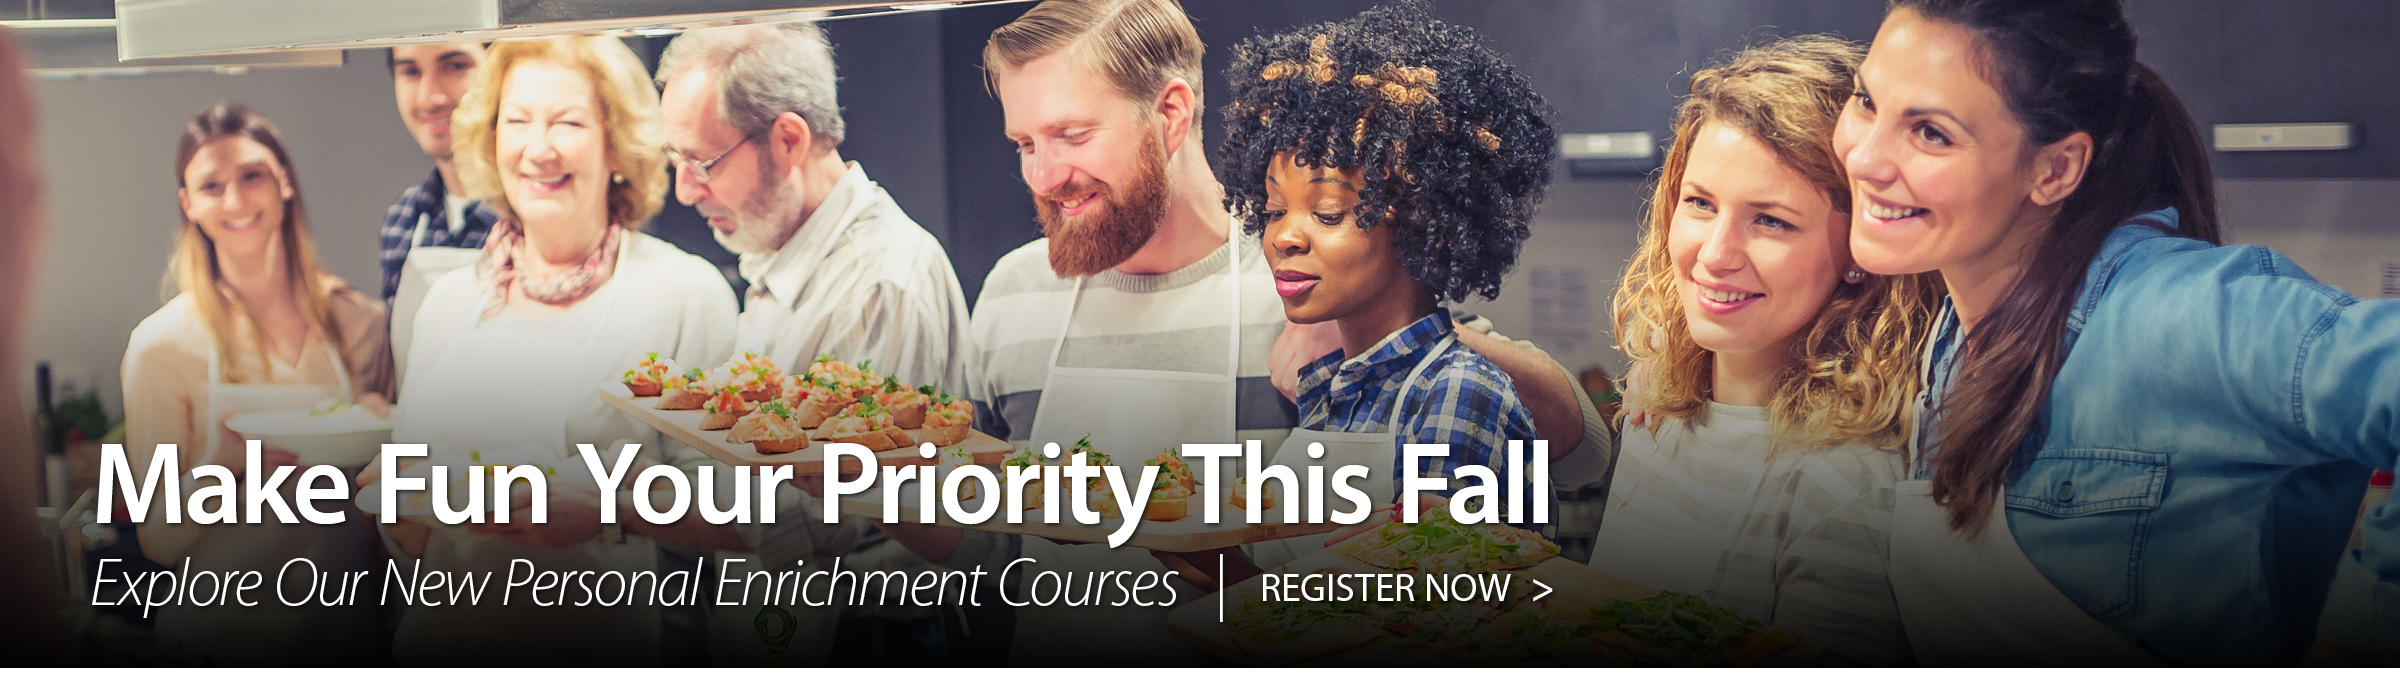 Make Fun Your Priority This Fall Explore Our New Personal Enrichment Courses